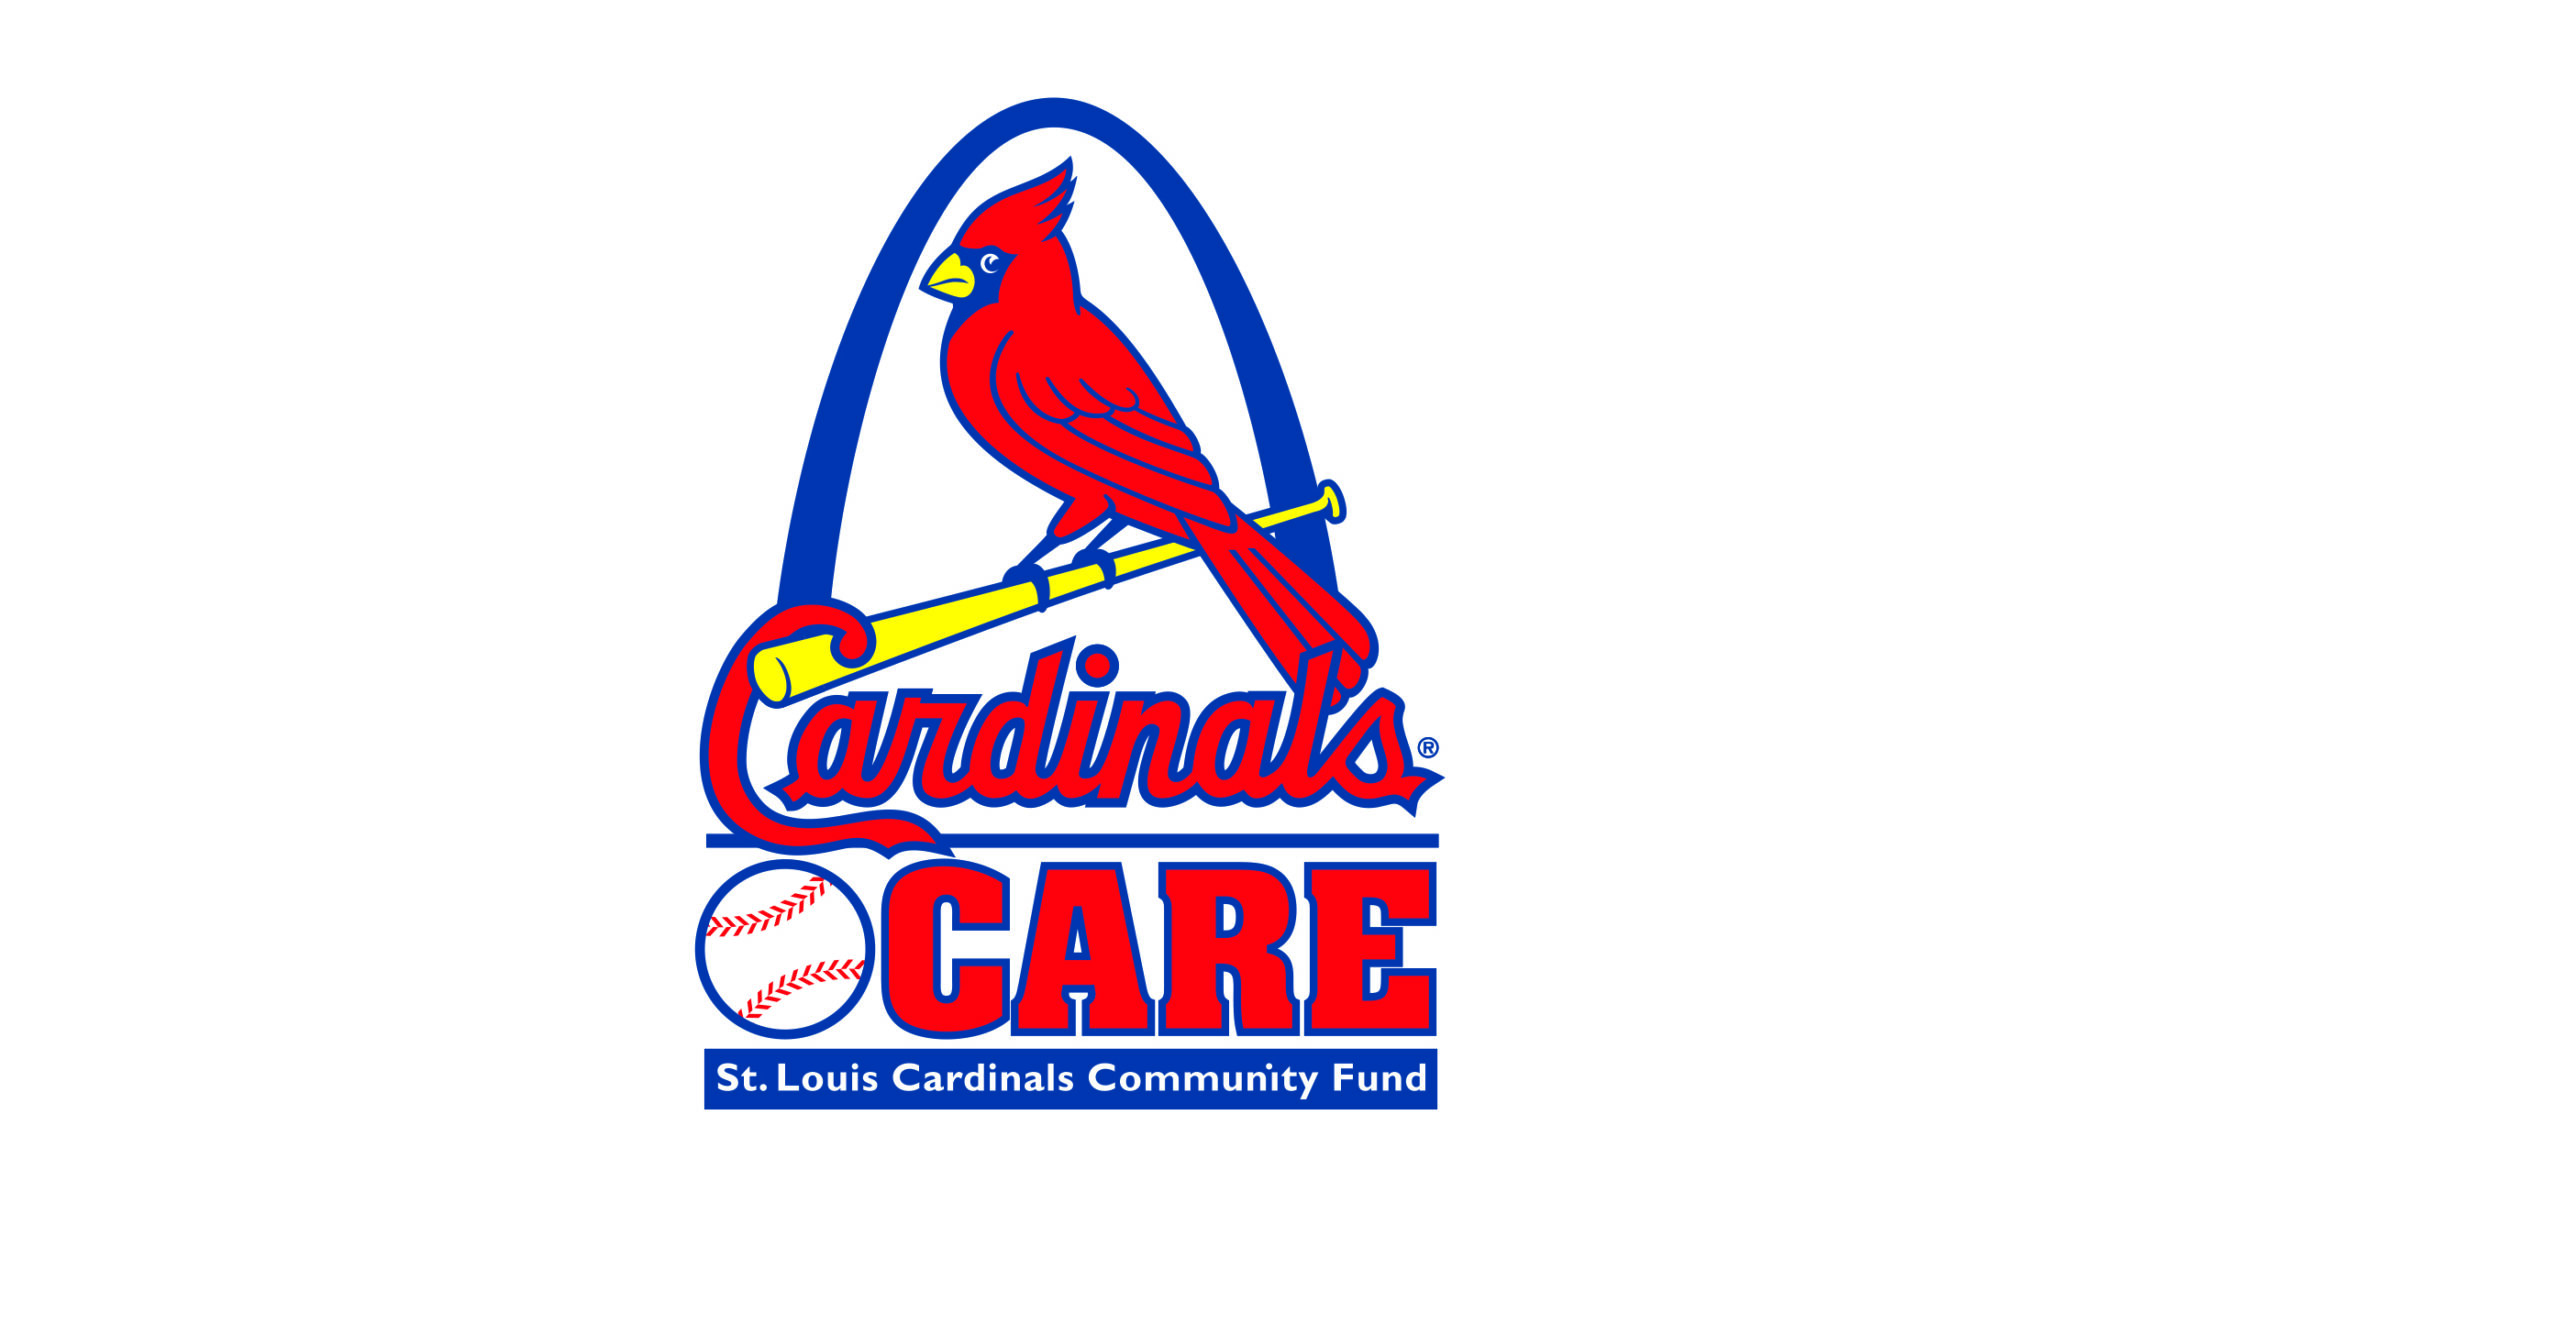 gkaspartnerlogos_0007_Cardinals-Care-Logo.jpg